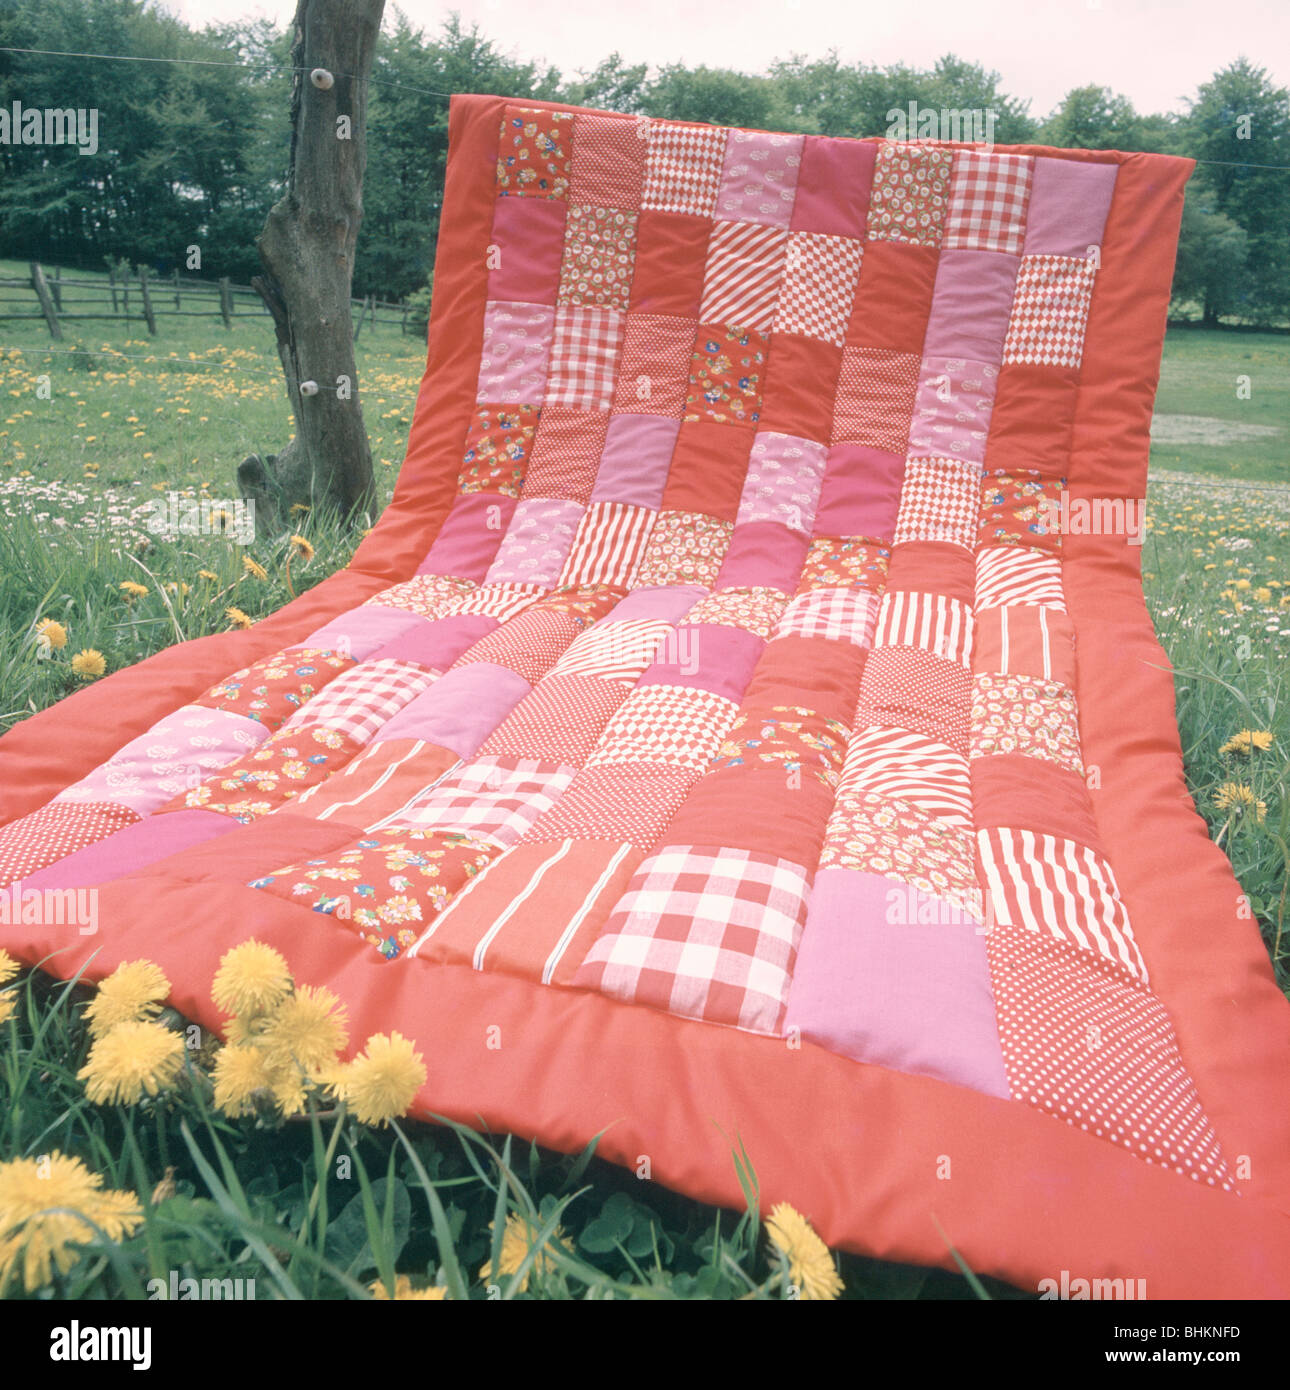 Patchwork Quilt Sewing Stock Photos & Patchwork Quilt Sewing Stock ...